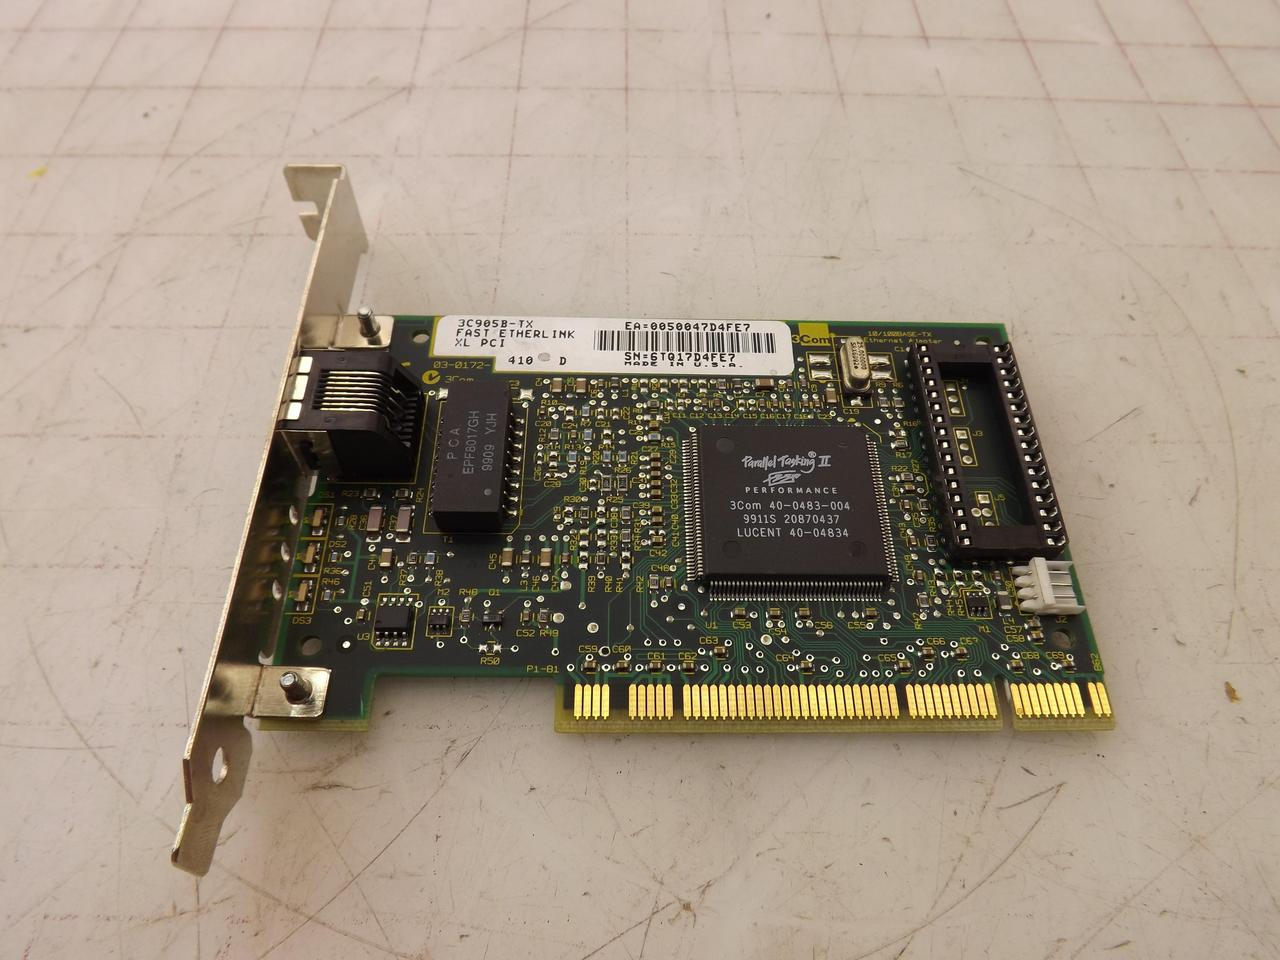 3COM 10100BASE-TX ETHERNET ADAPTER DOWNLOAD DRIVER